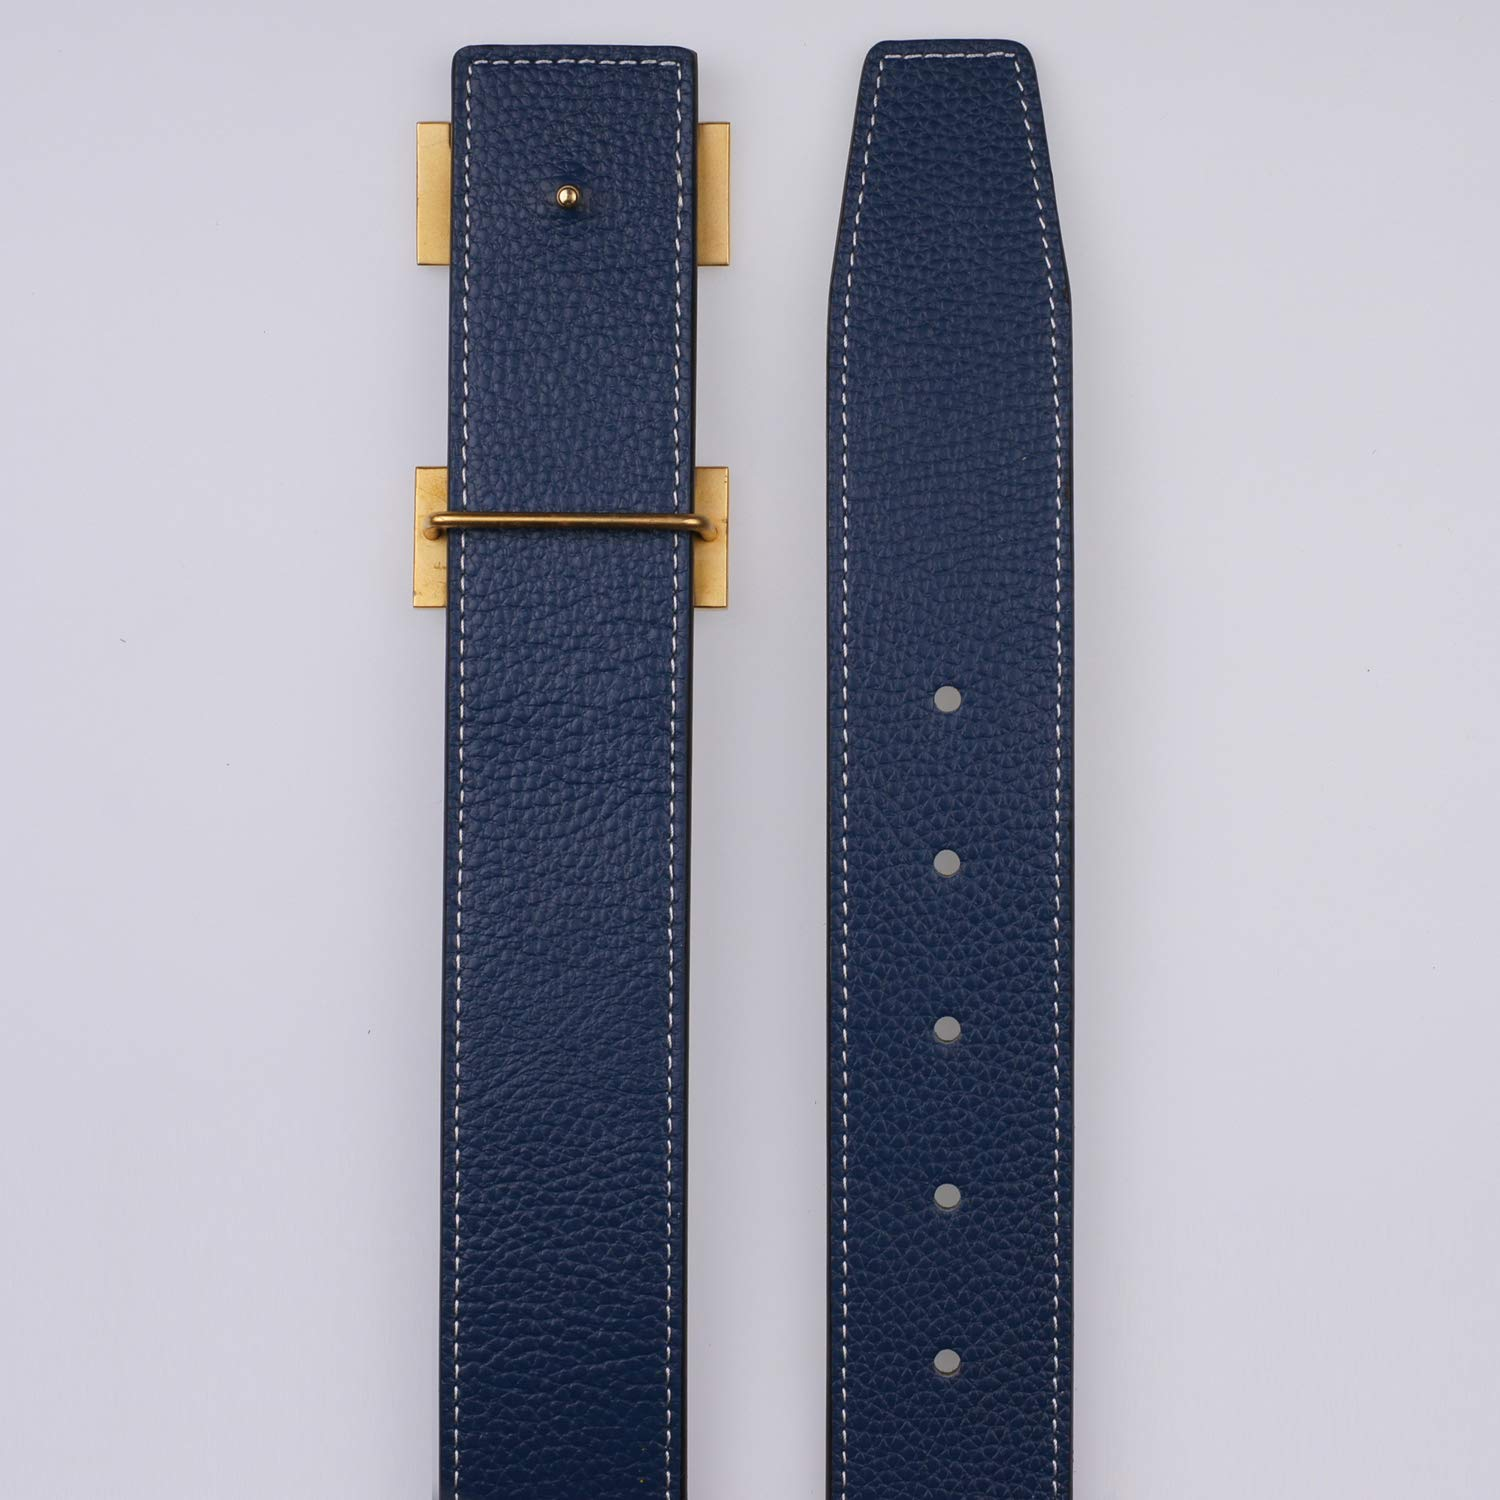 for Hermes Replacement Leather Belt Strap Reversible Replacement Belt Strap Genuine Leather 1 1//2inch Wide